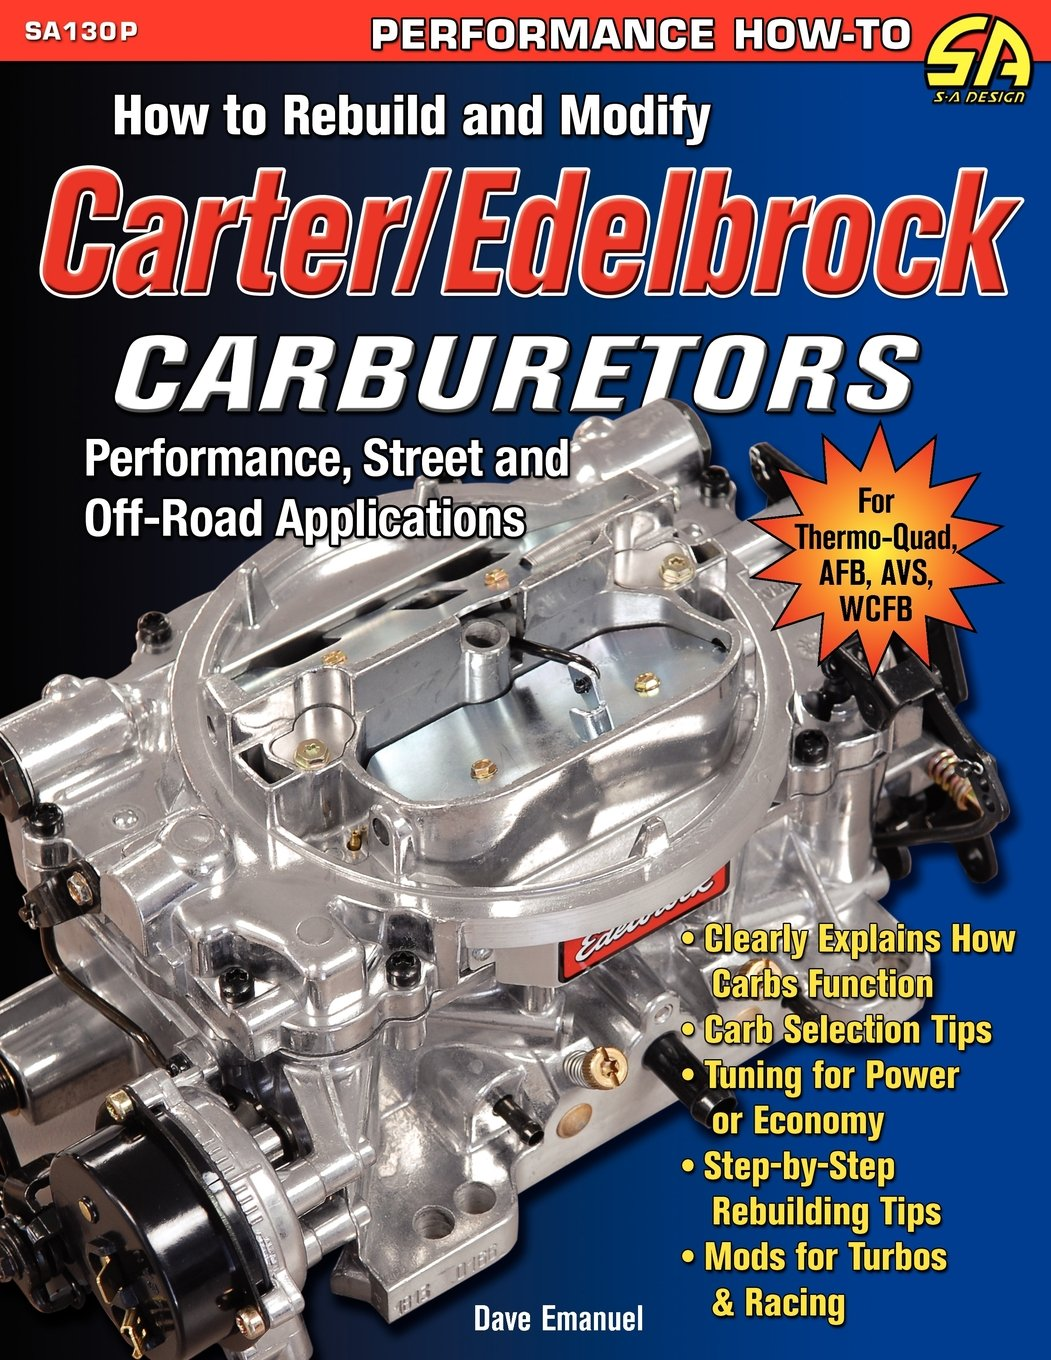 How to rebuild and modify carteredelbrock carburetors dave emanuel how to rebuild and modify carteredelbrock carburetors dave emanuel 9781613250679 amazon books fandeluxe